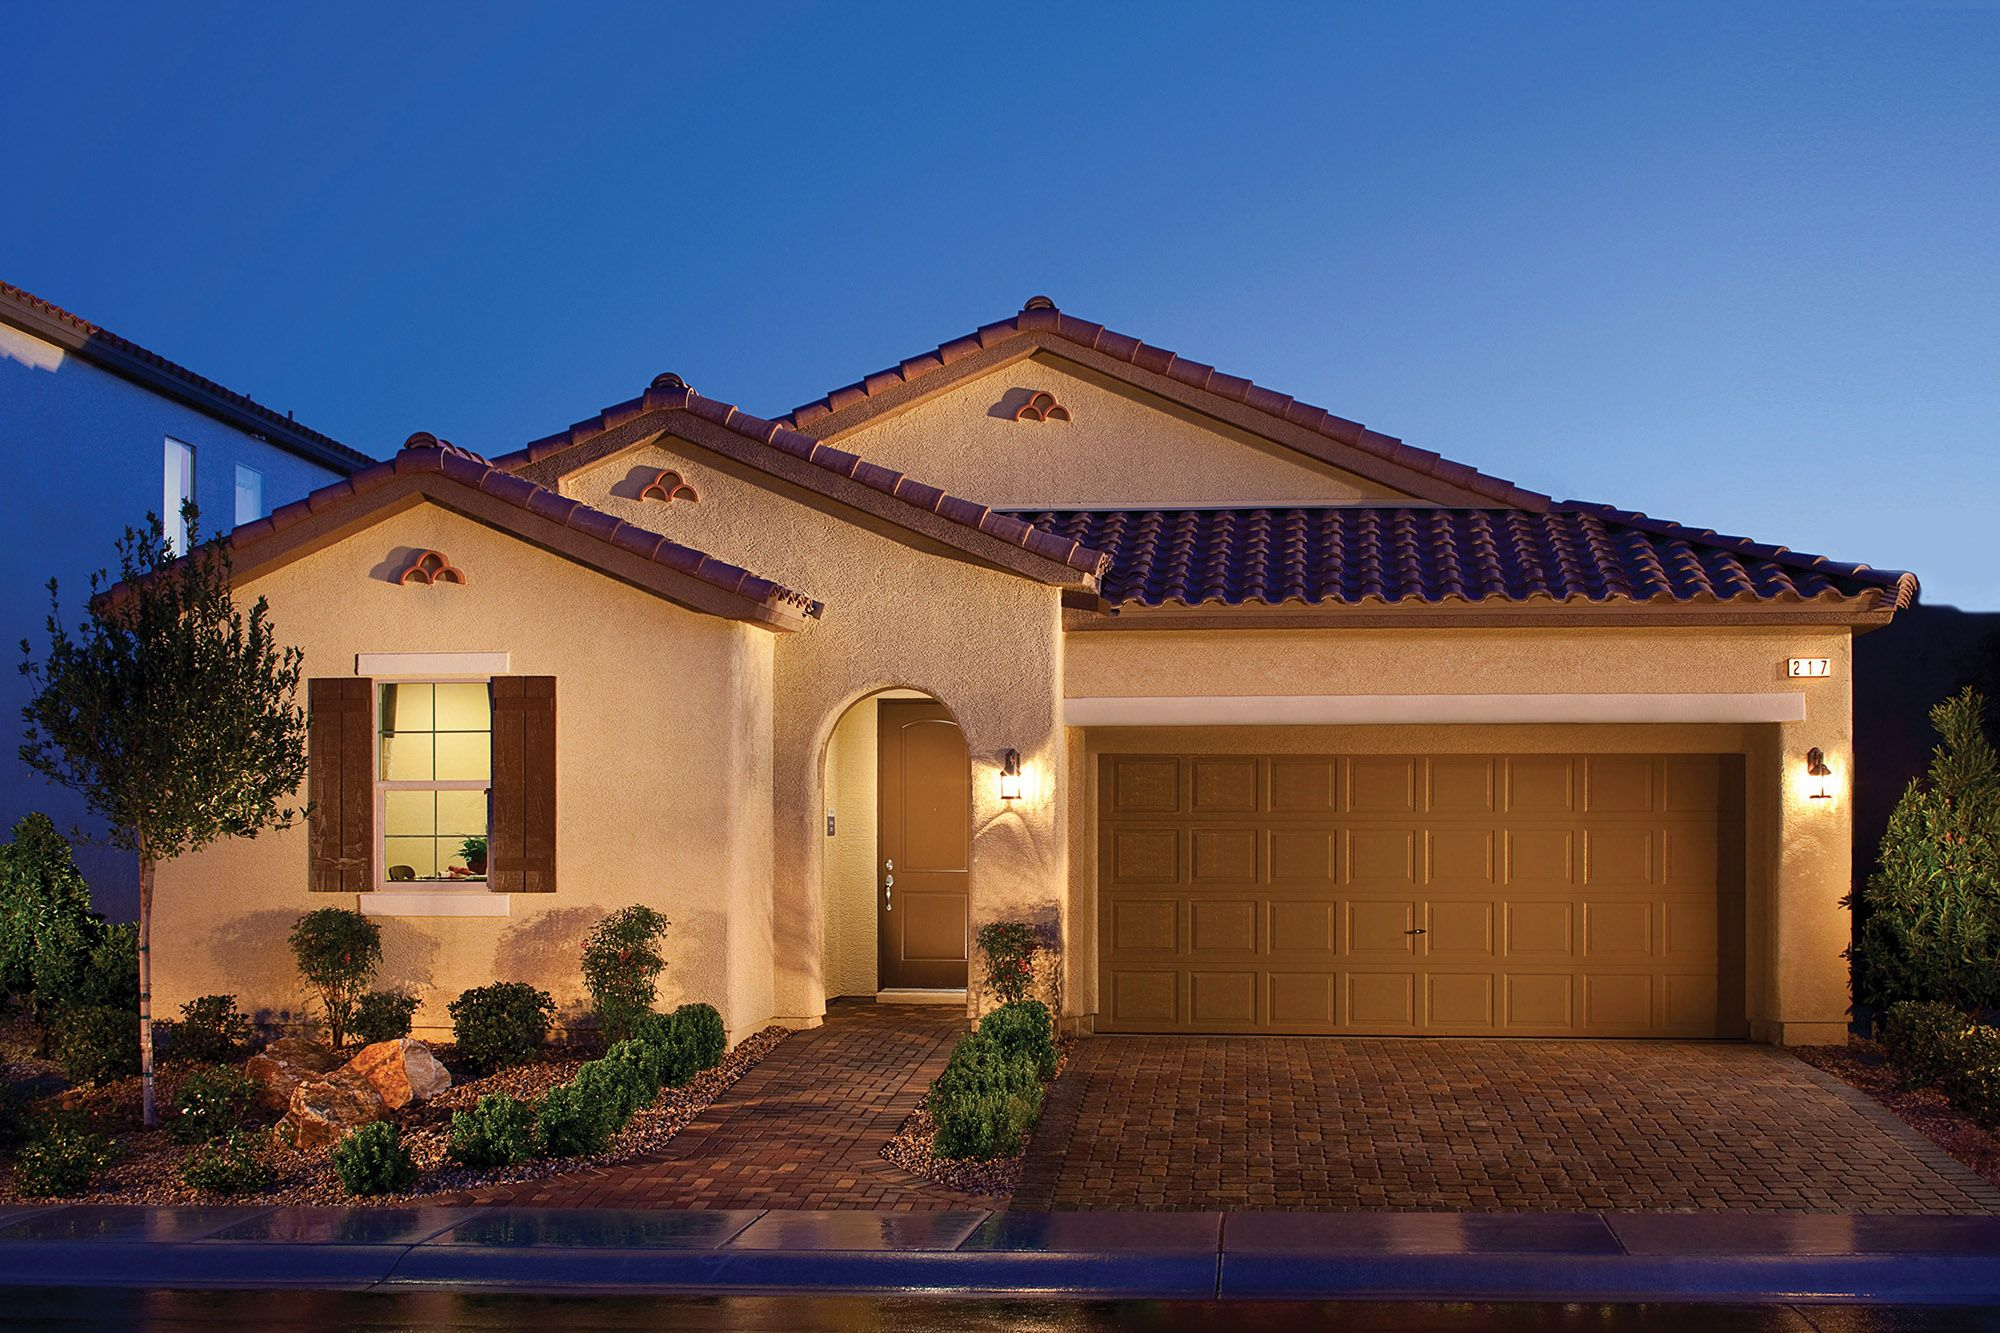 Tuscany residential village new homes in henderson nv by Pics of new homes